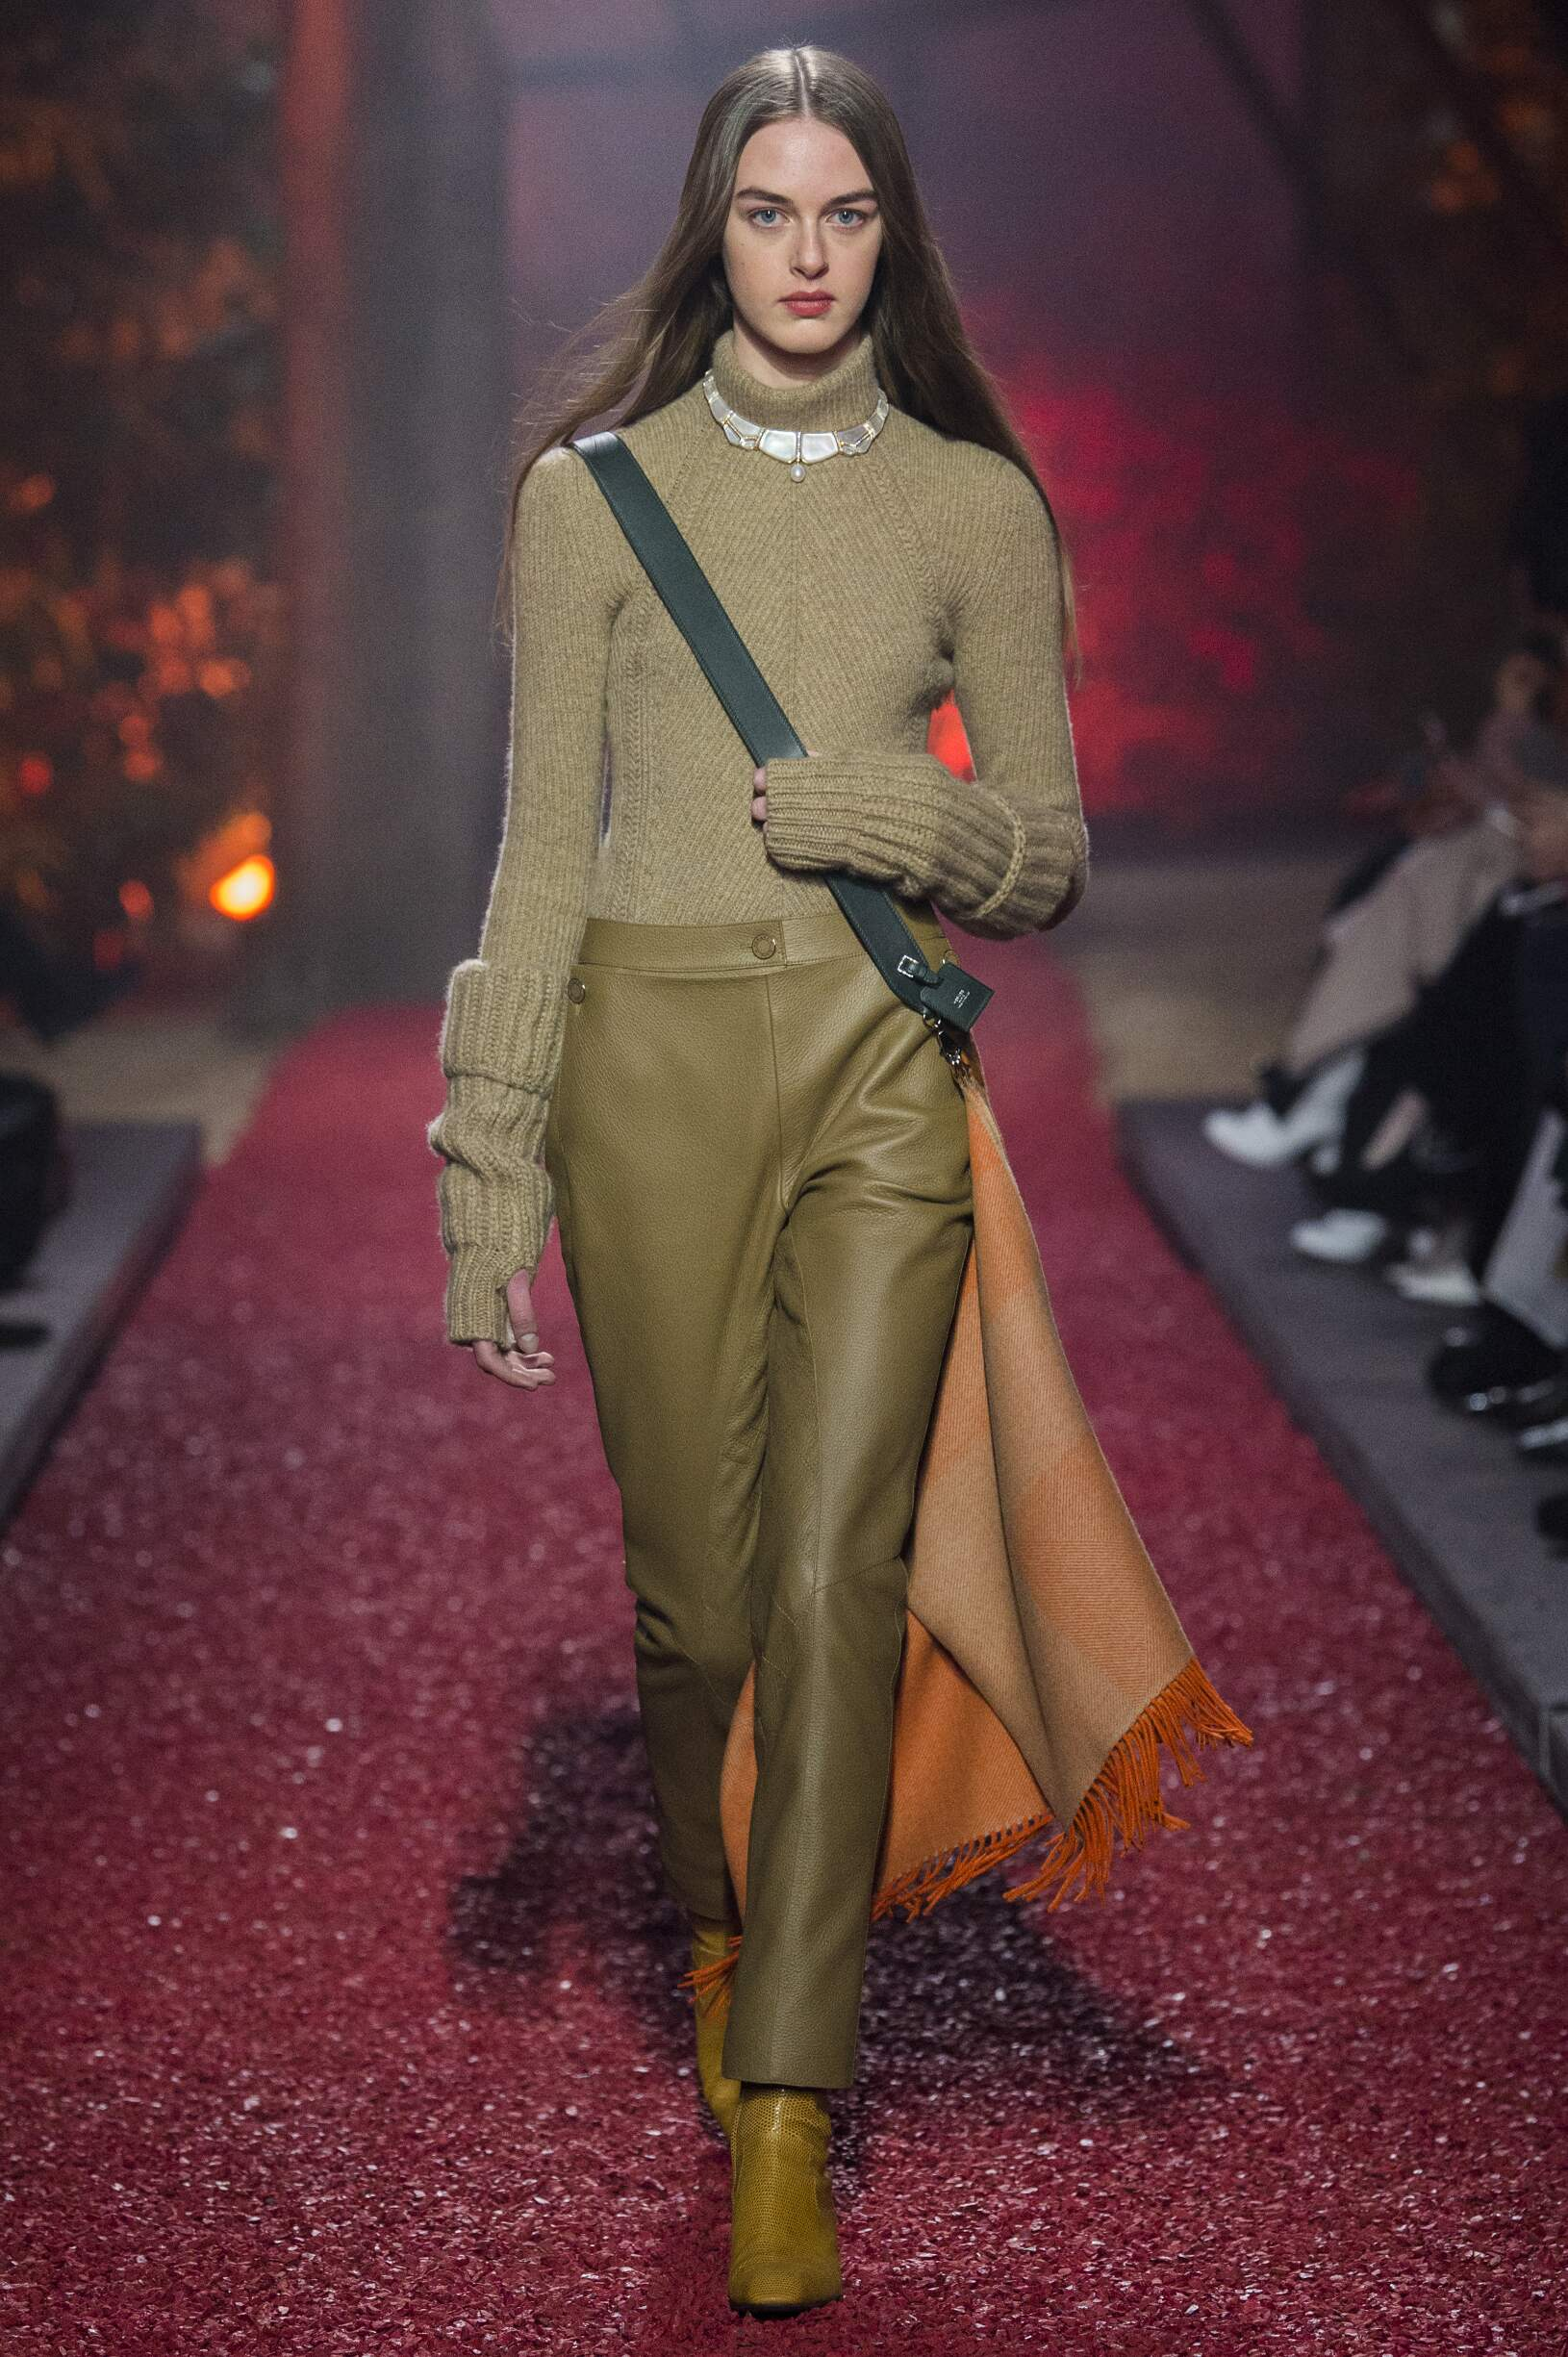 Woman FW 2018-19 Hermès Fashion Show Paris